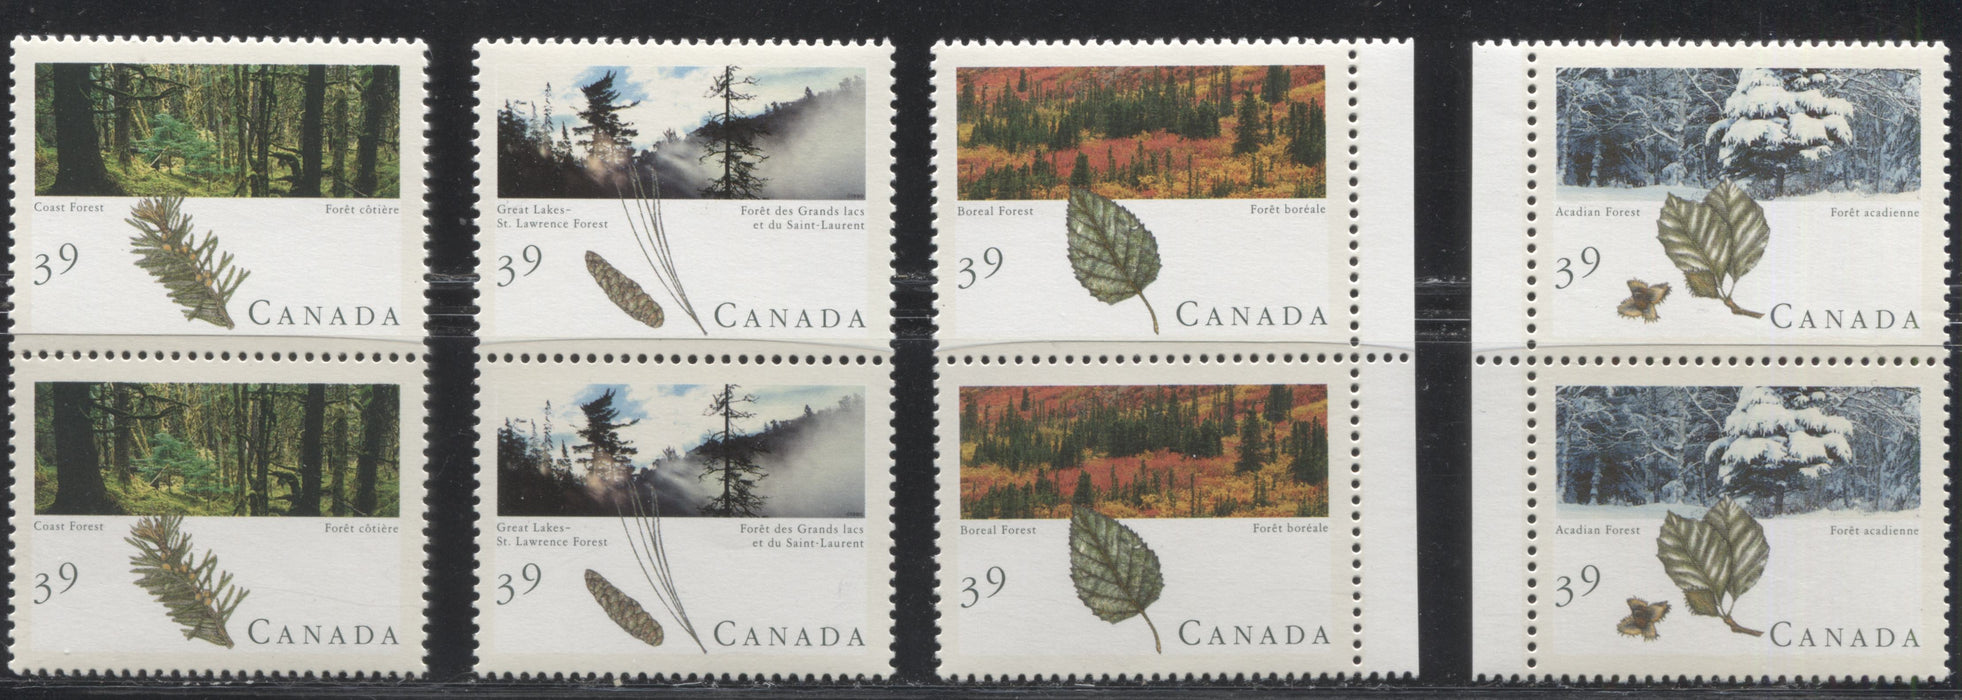 Canada #1283i-1286i 39c Multicoloured, 1990 Forests Issue, a VFNH Set of Identical Vertical Pairs